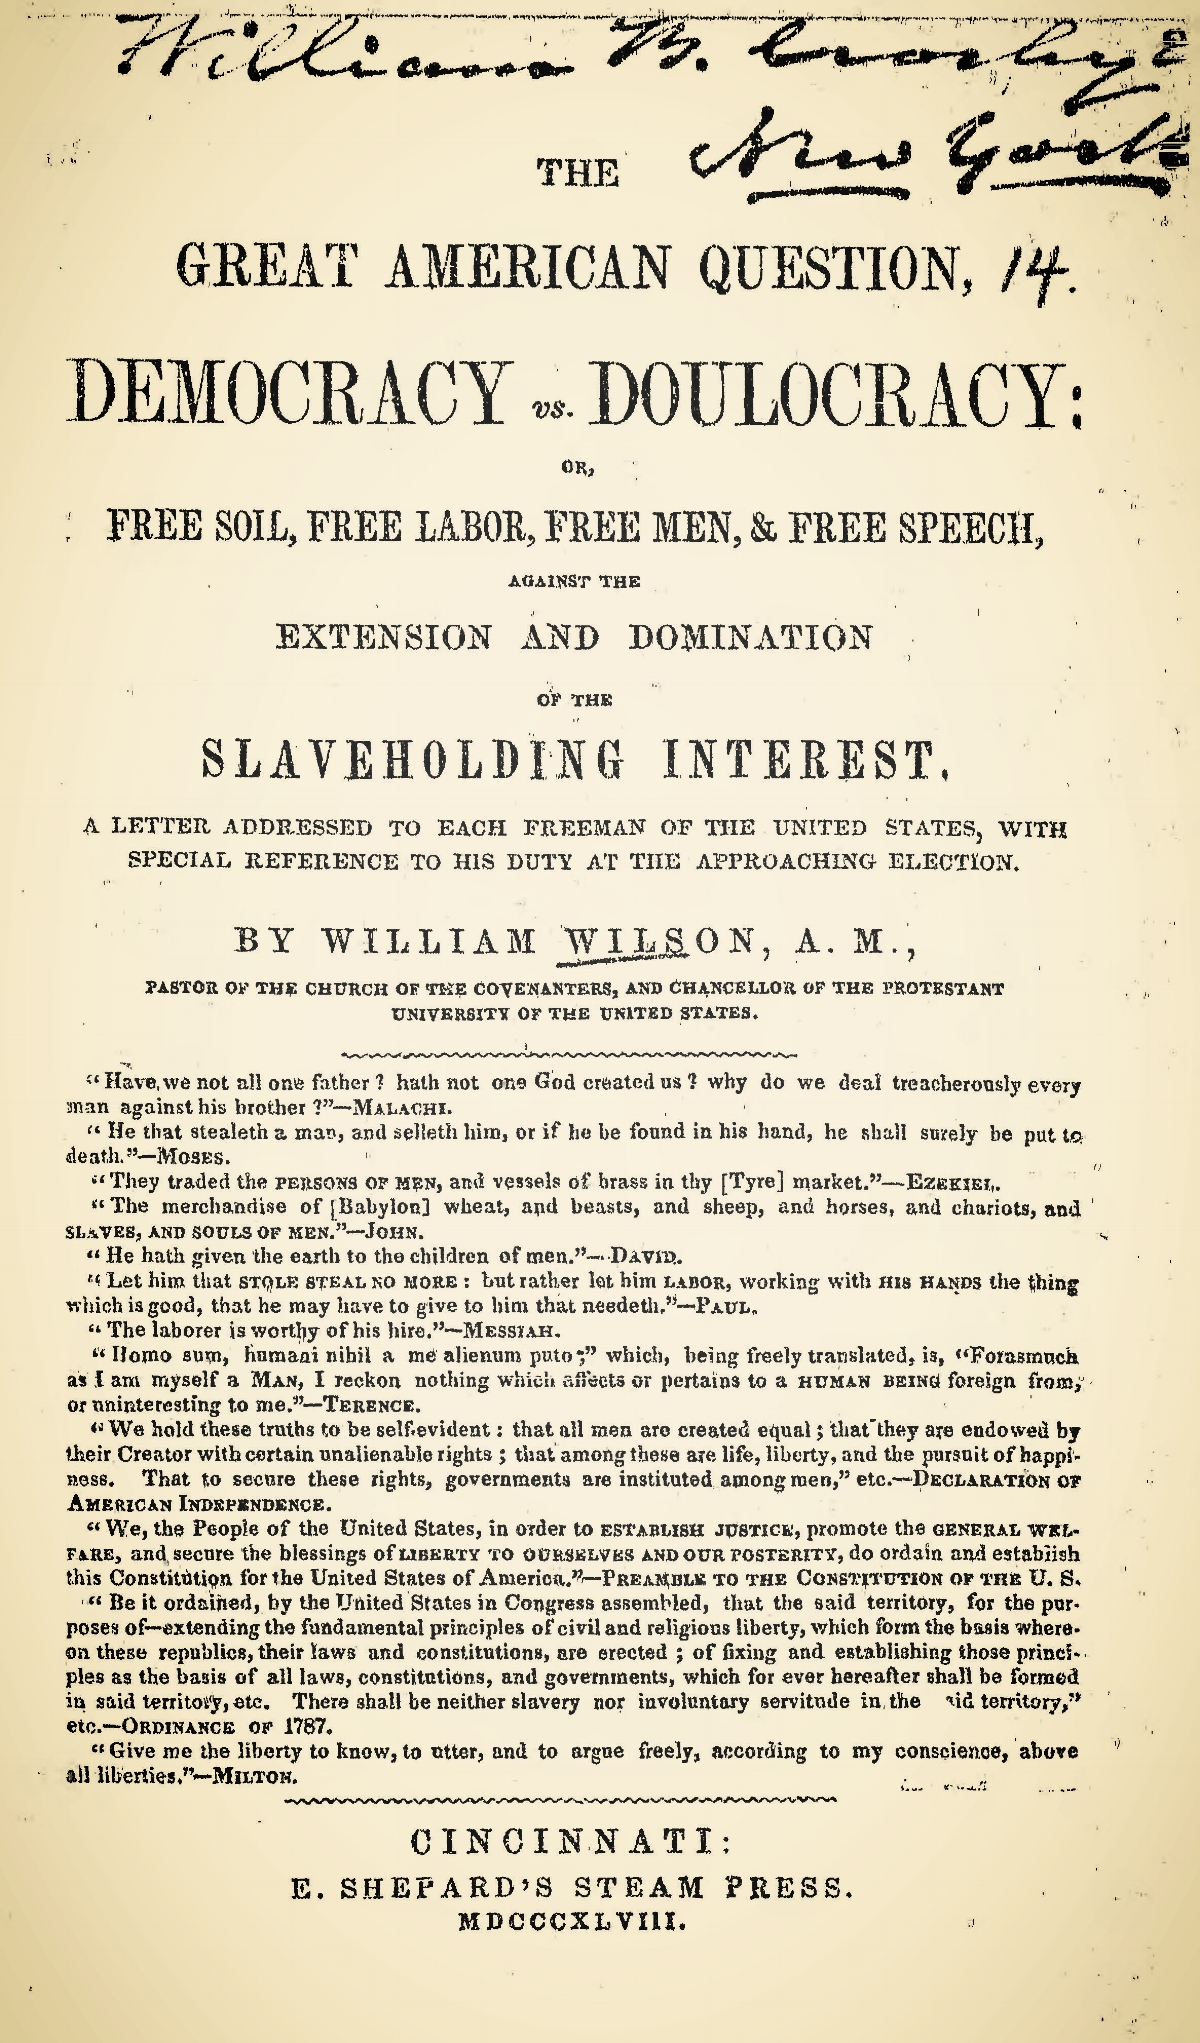 Wilson, William, The Great American Question Title Page.jpg